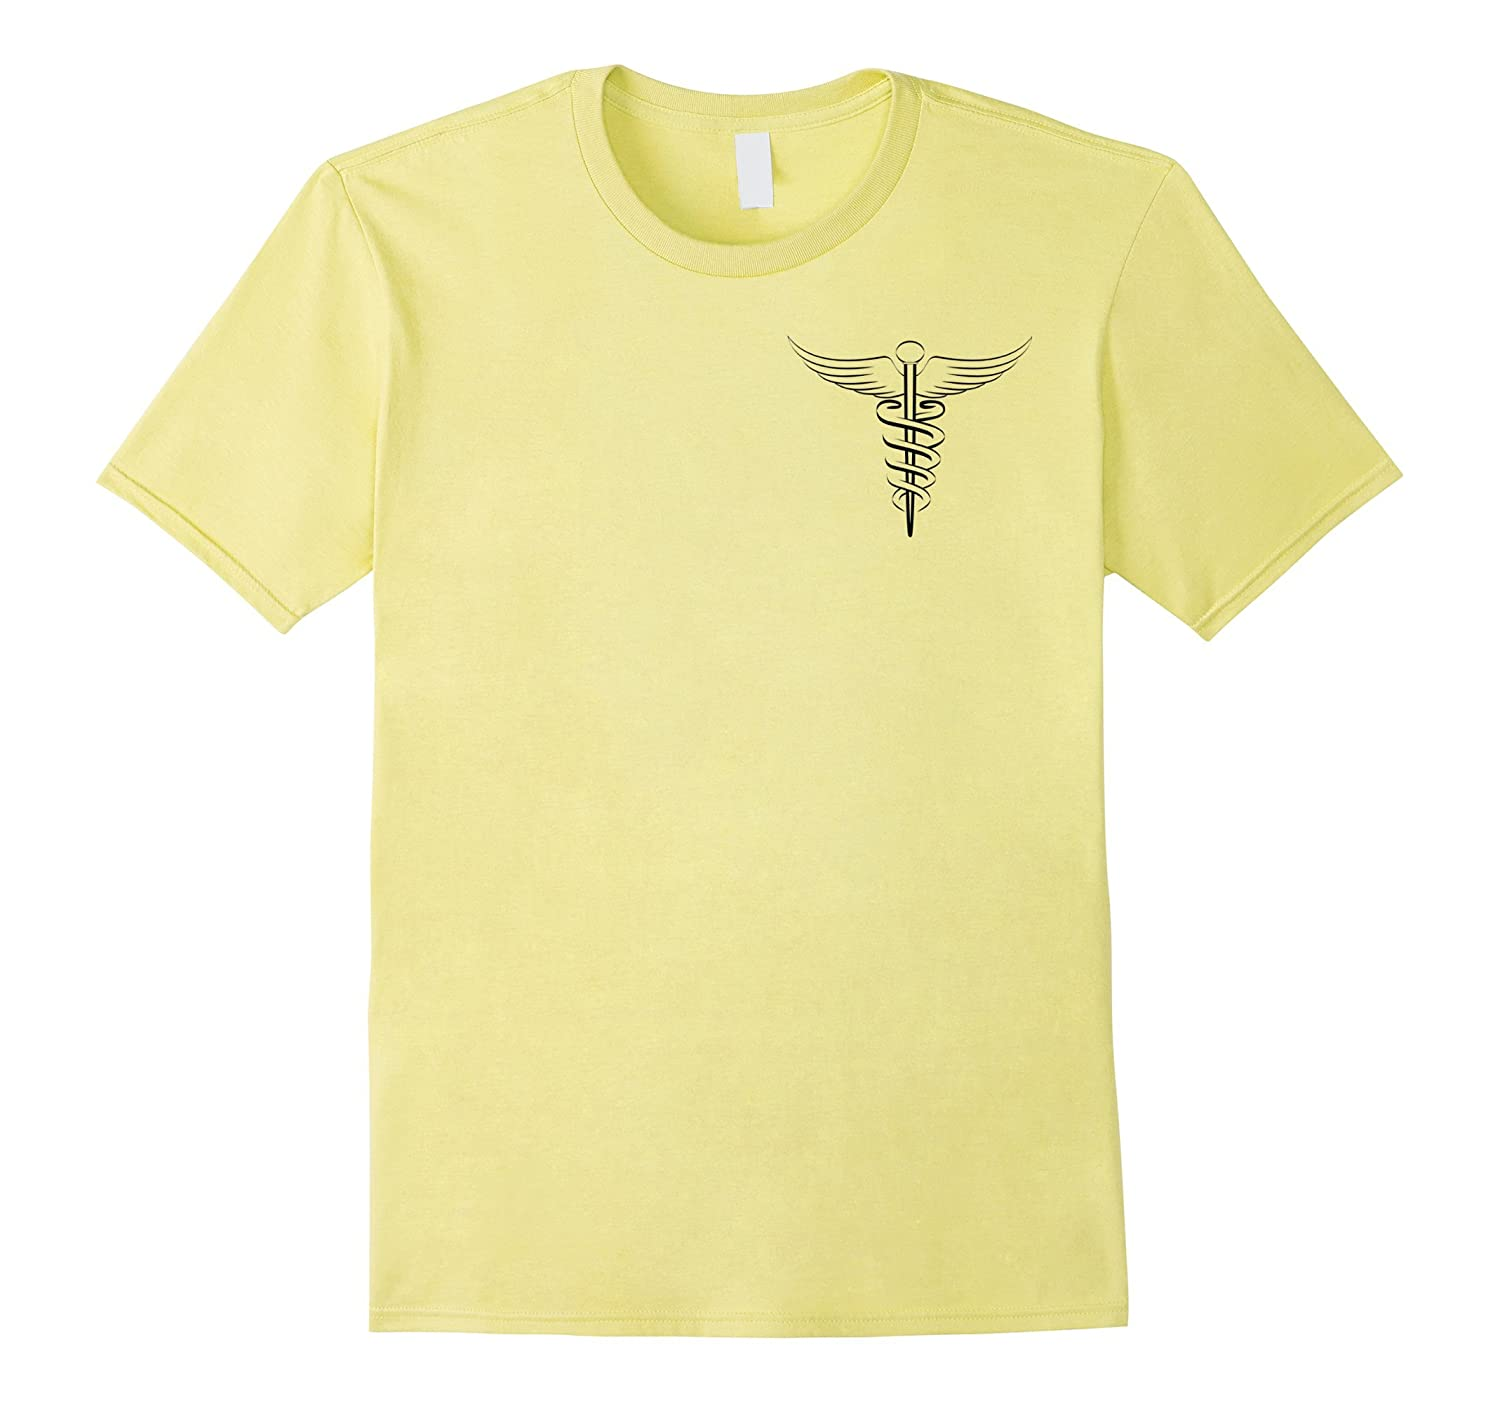 Registered Nurse Caduceus Symbol Logo Nursing T Shirt Th Teehelen